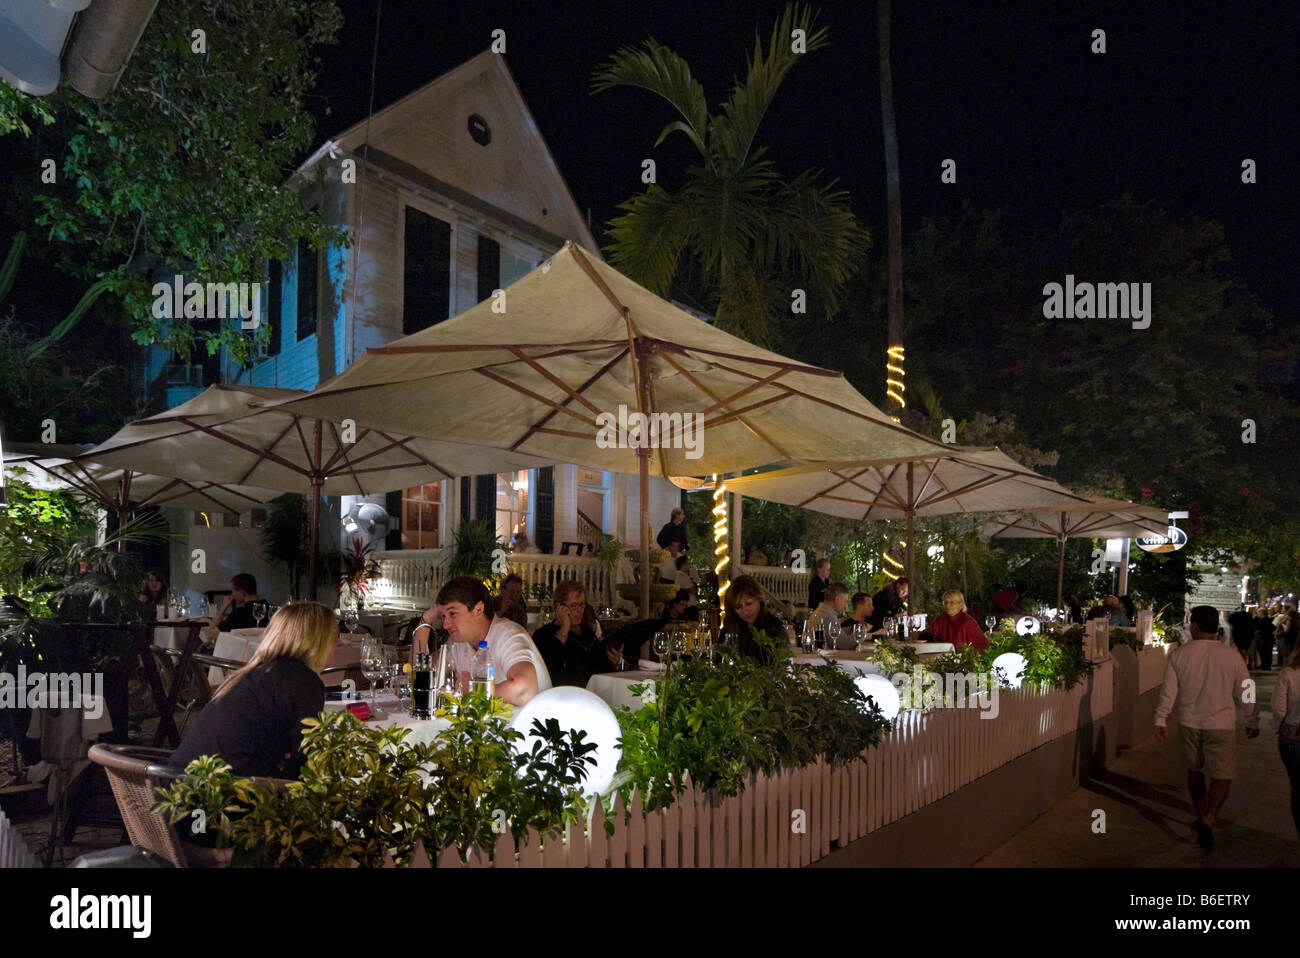 Young couple at an outdoor restaurant on Duval Sreet at night, Old Town, Key West, Florida Keys, USA - Stock Image